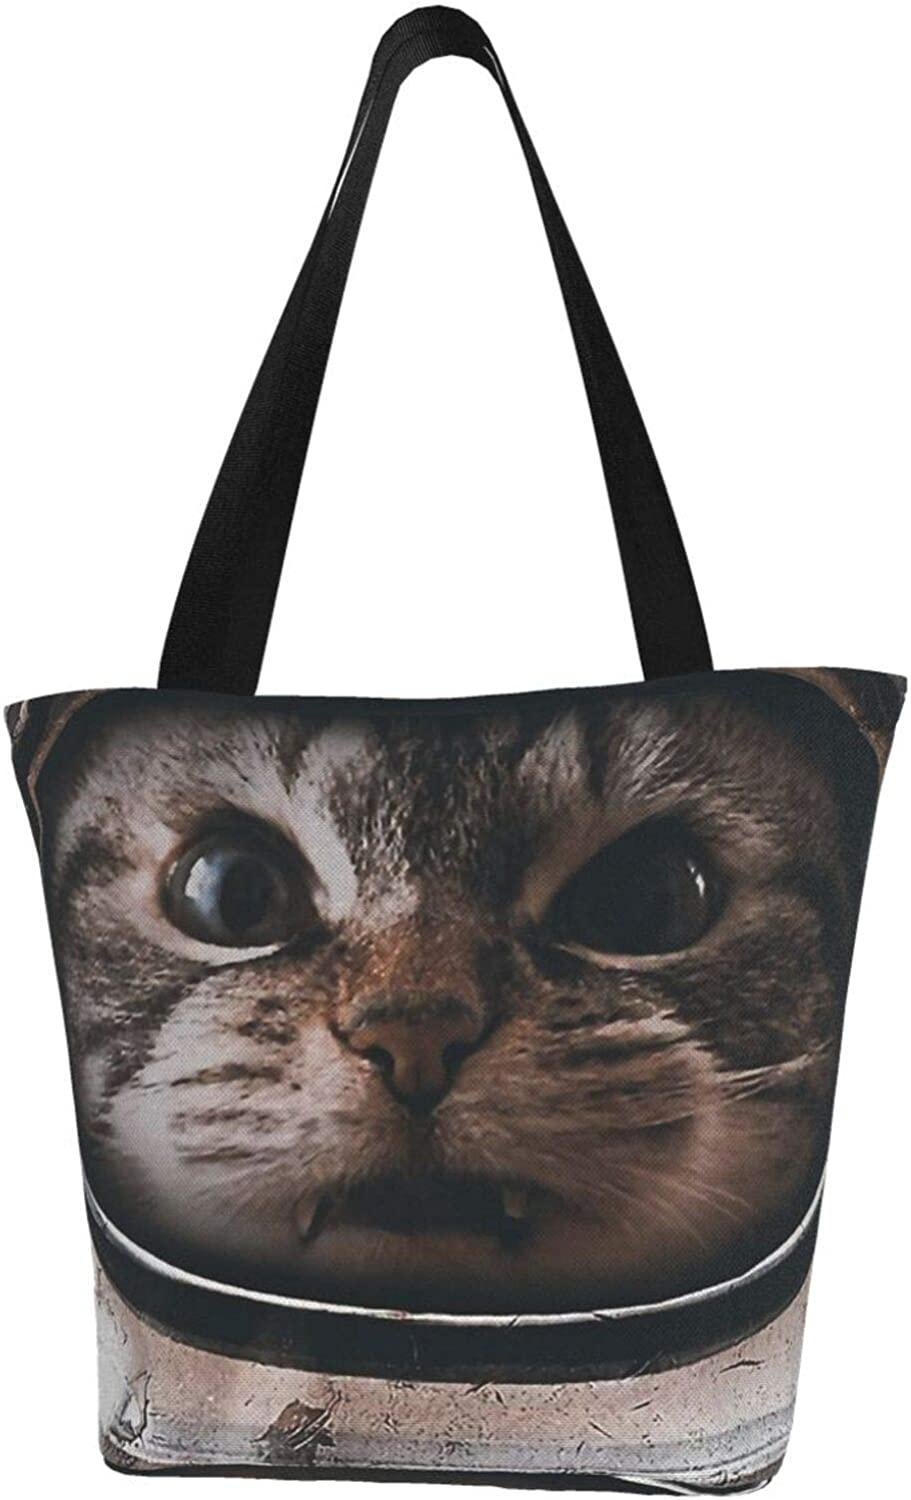 Astronaut Space Cat Funny Themed Printed Women Canvas Handbag Zipper Shoulder Bag Work Booksbag Tote Purse Leisure Hobo Bag For Shopping